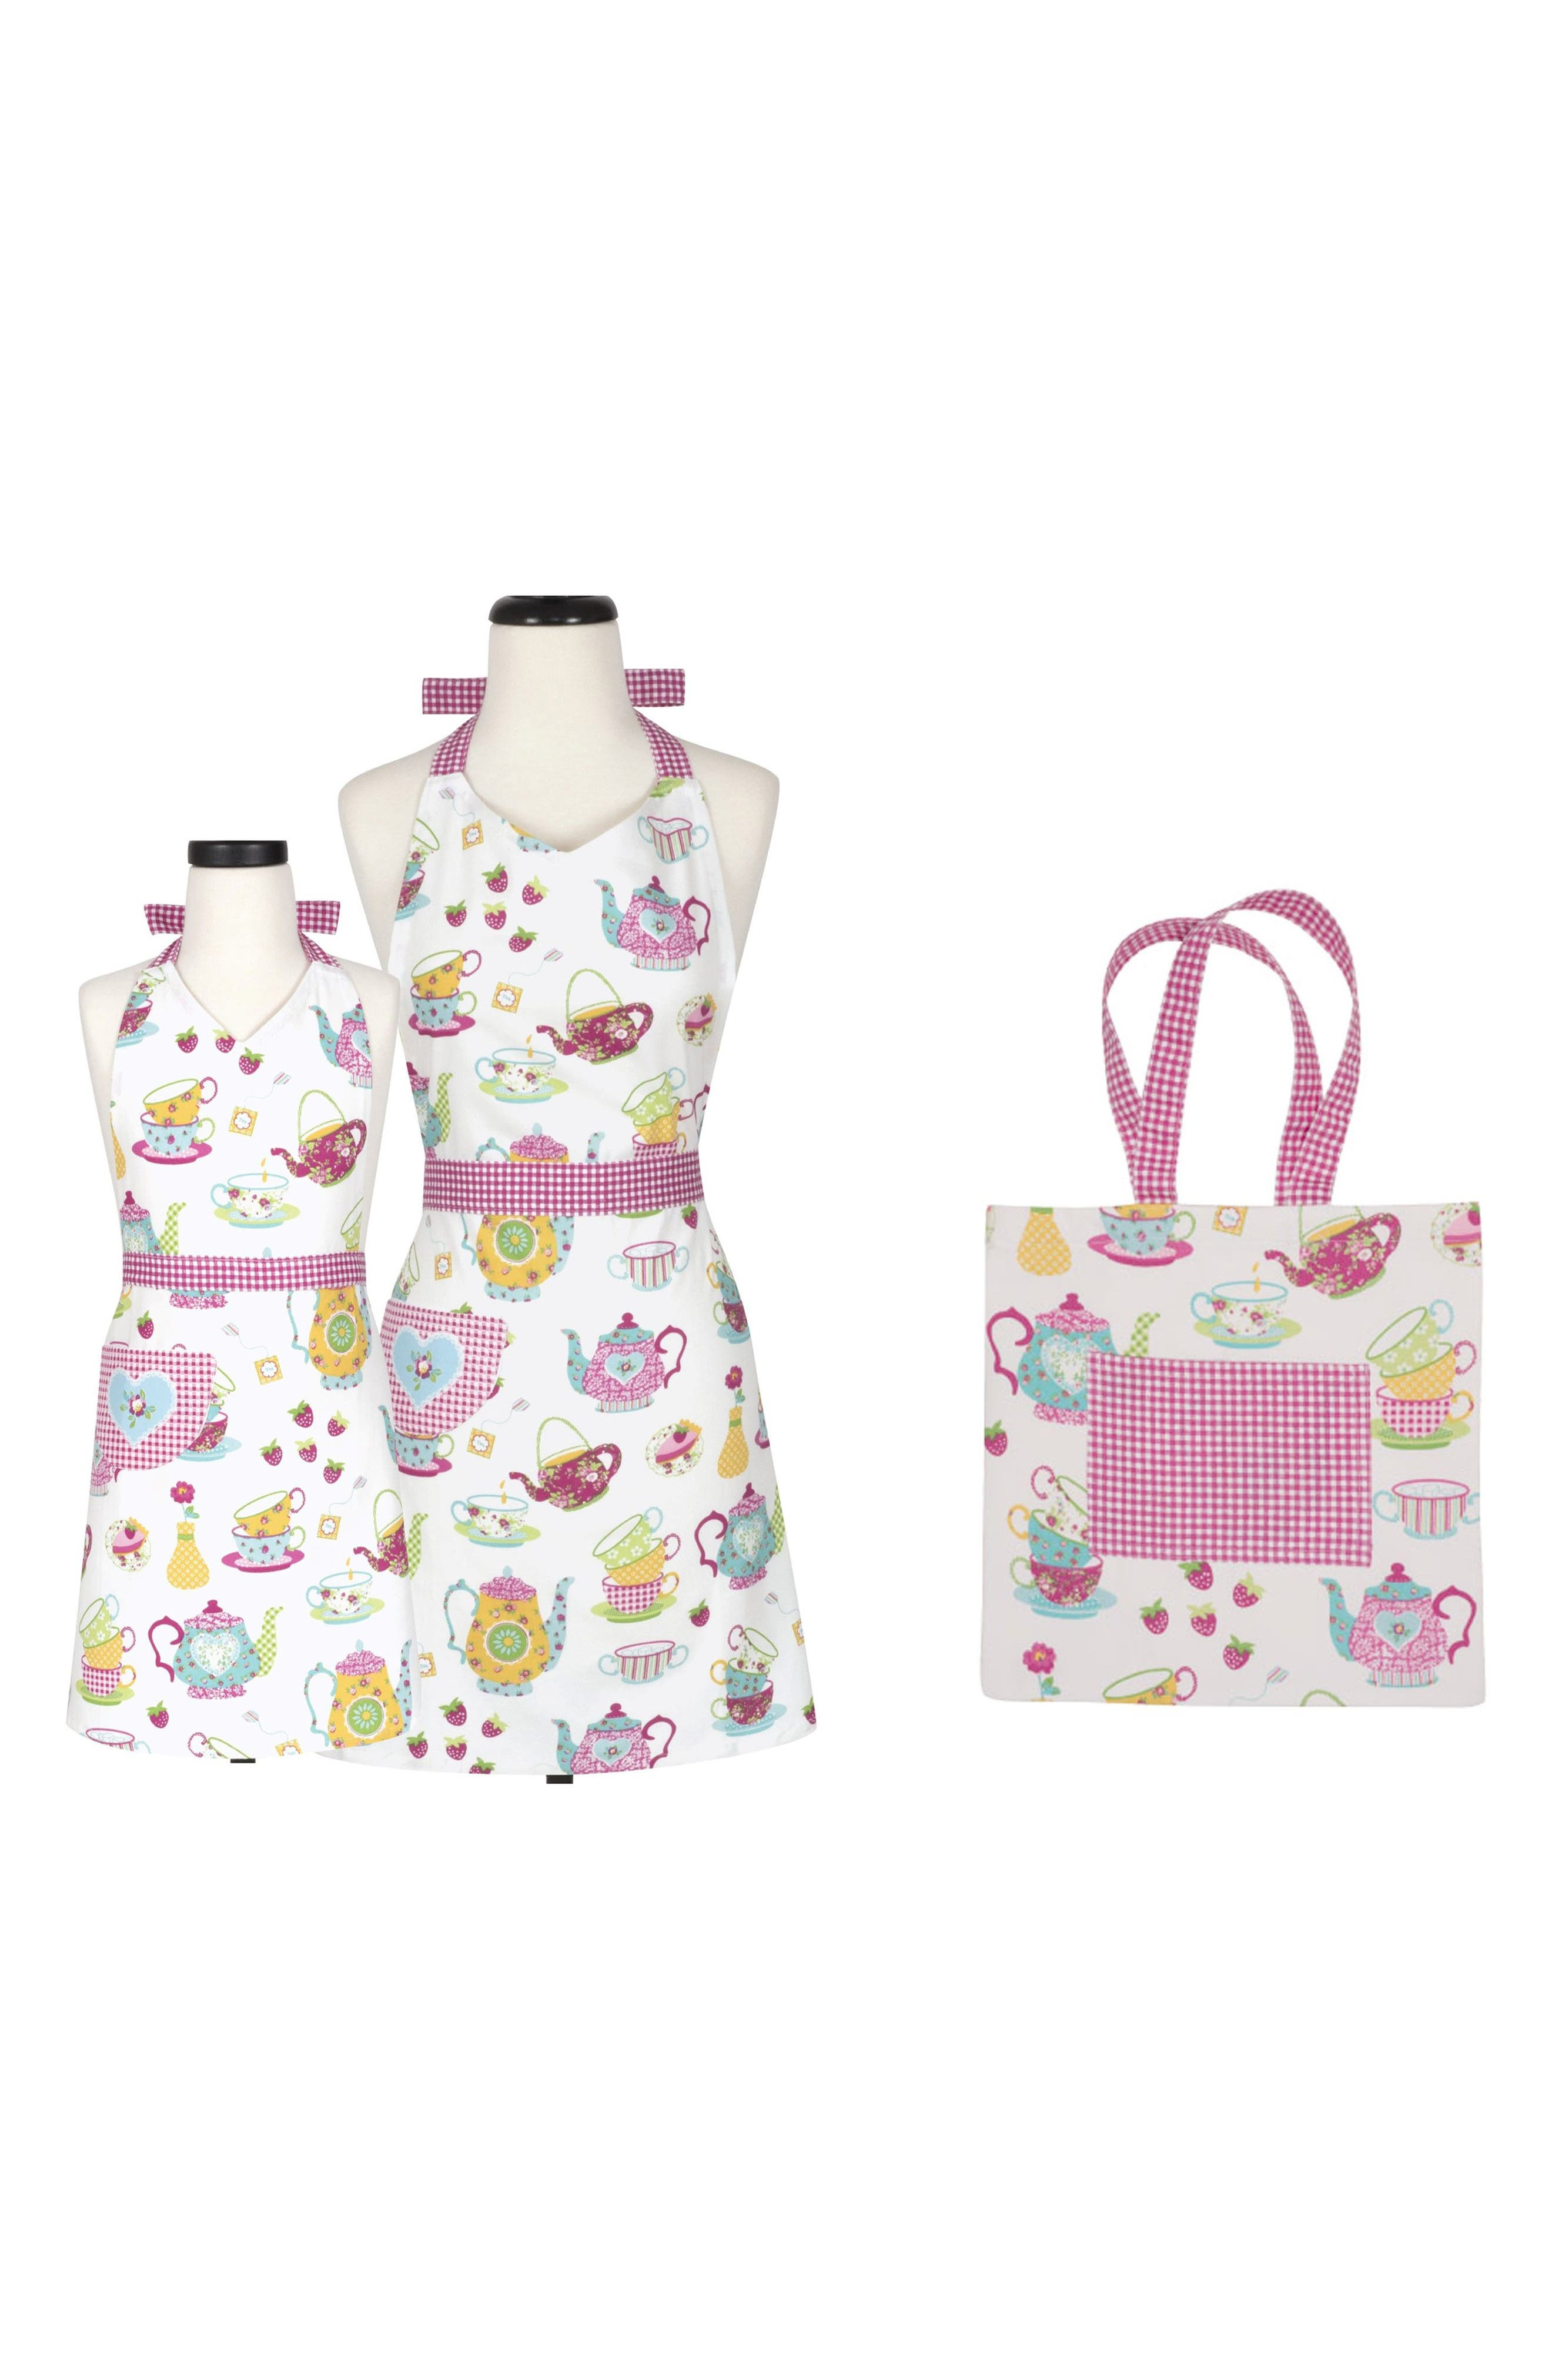 Handstand KidsTeatime Print Adult & Kid Apron Gift Set with Tote,                         Main,                         color, Pink